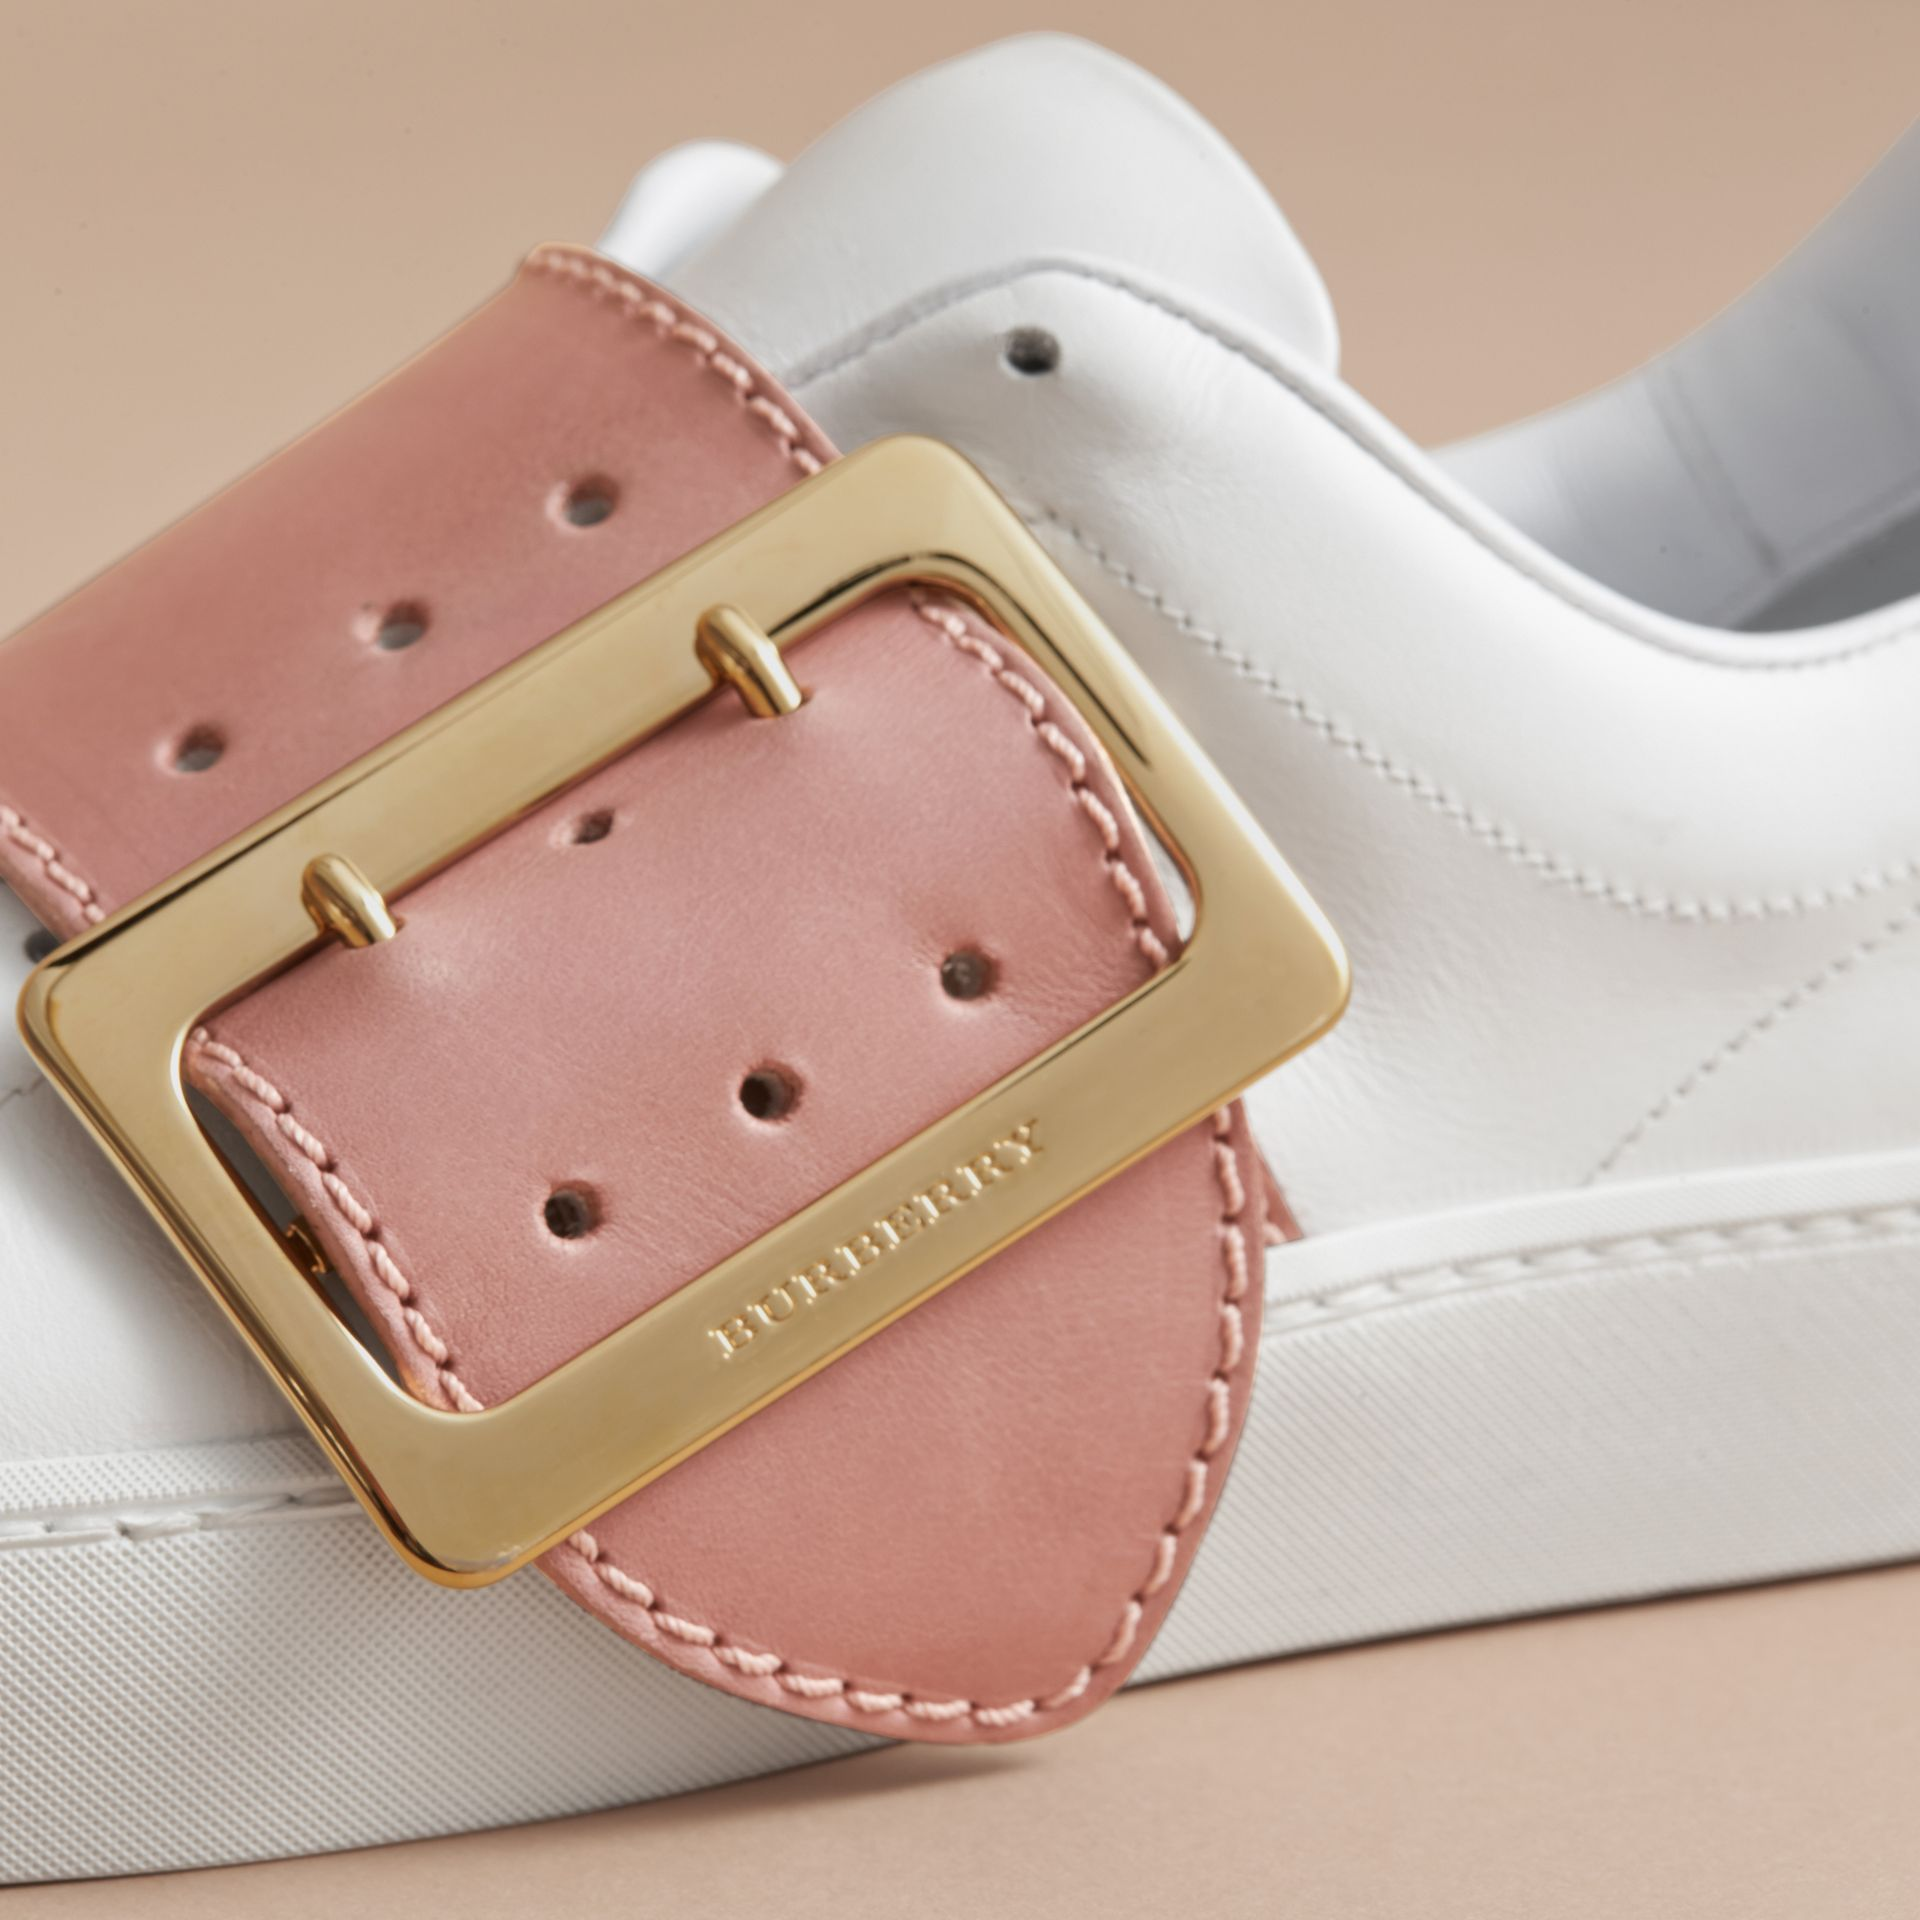 Buckle Detail Leather Trainers in Pink Apricot - Women | Burberry Canada - gallery image 2